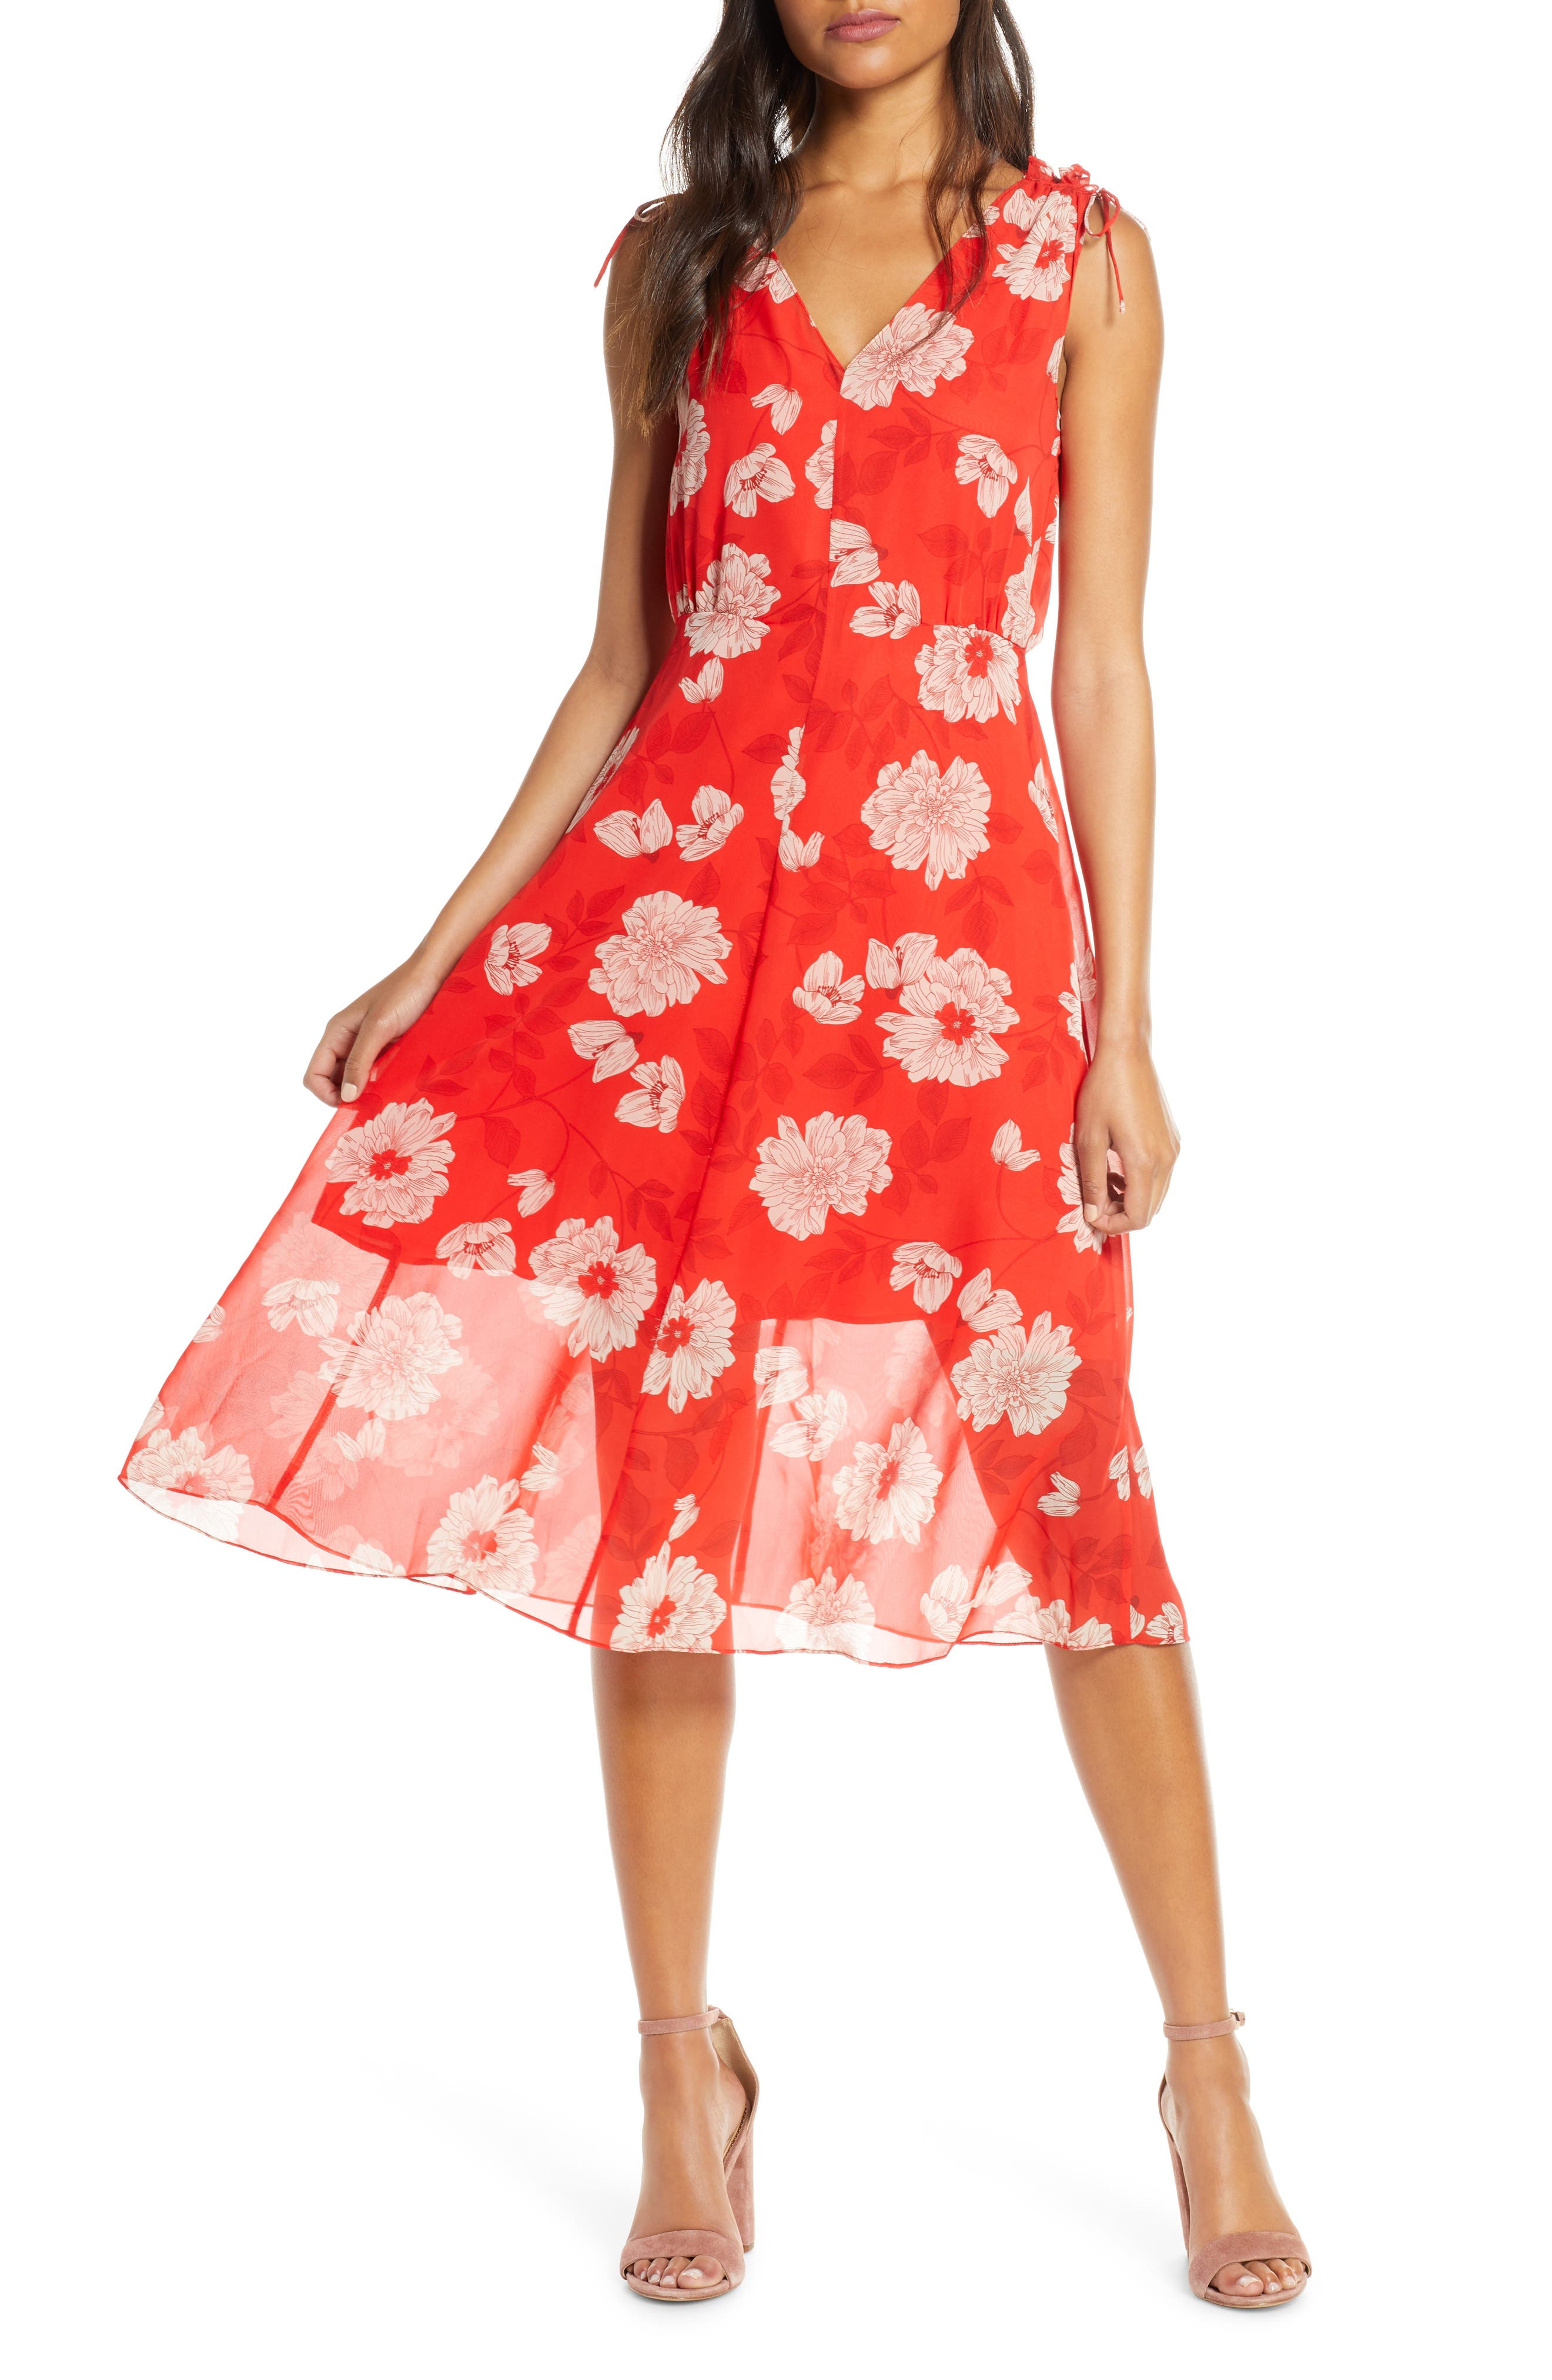 Vince Camuto Floral Print Tie Shoulder Chiffon Dress, Red